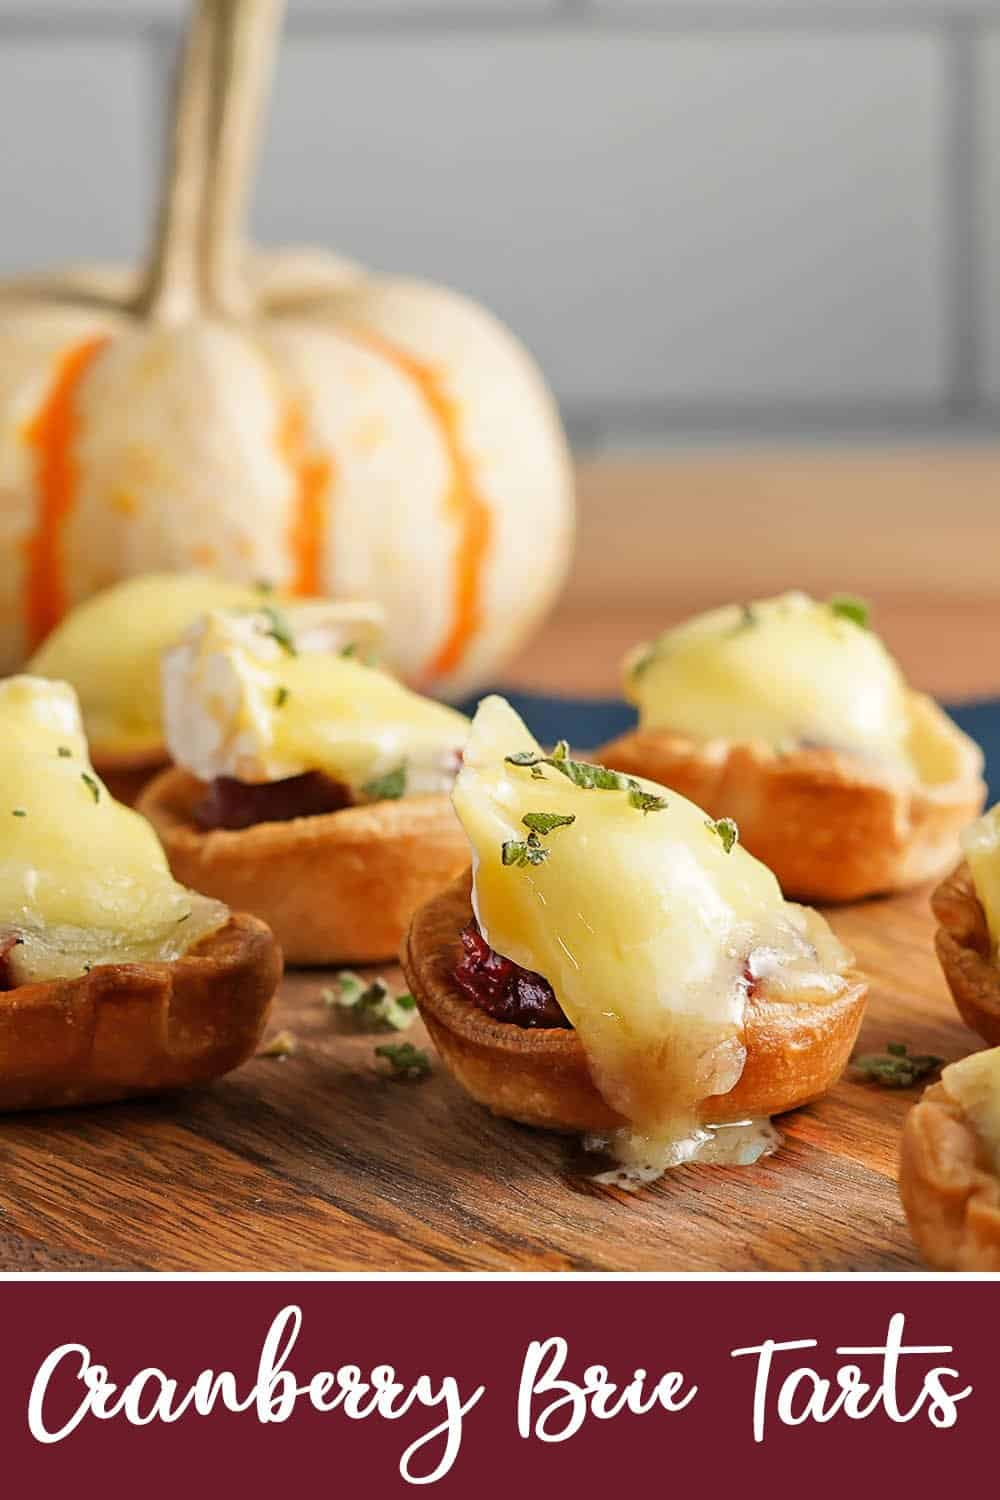 Cranberry Brie Tarts with pumpkin in the background